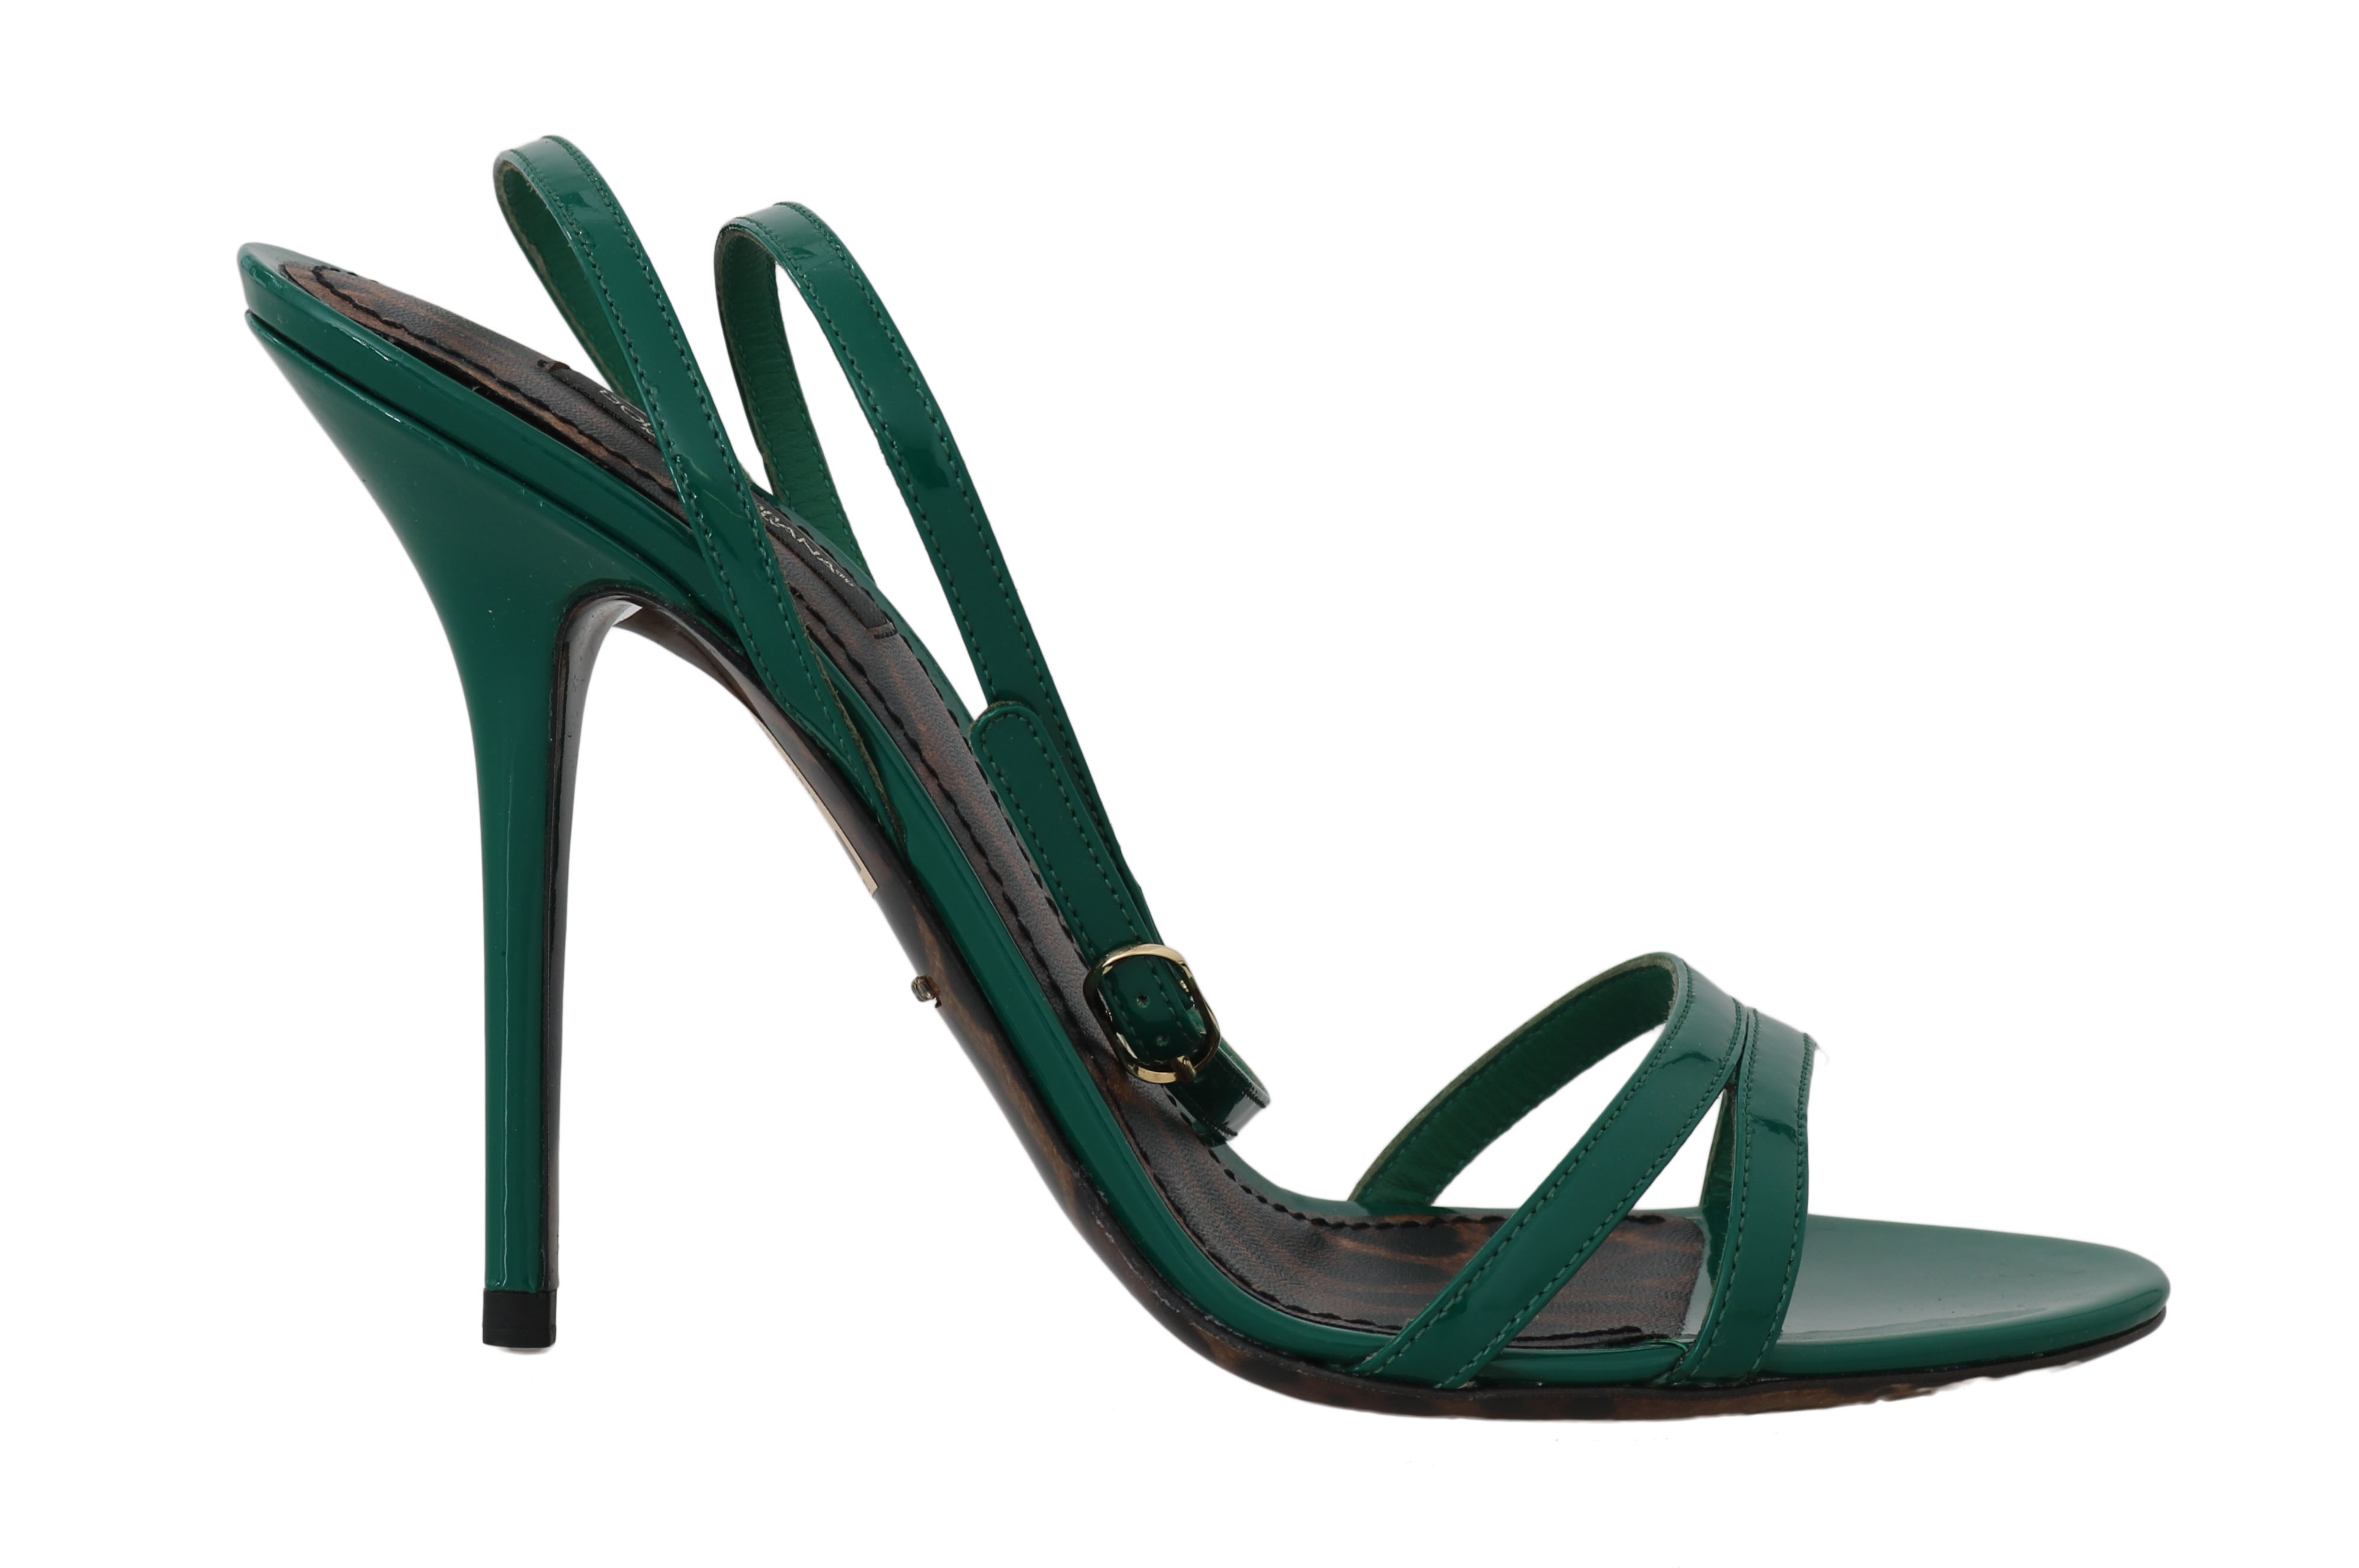 5d7a2d34e Dolce & Gabbana Green Leather Stiletto Heels Sandals • Top Fashion ...